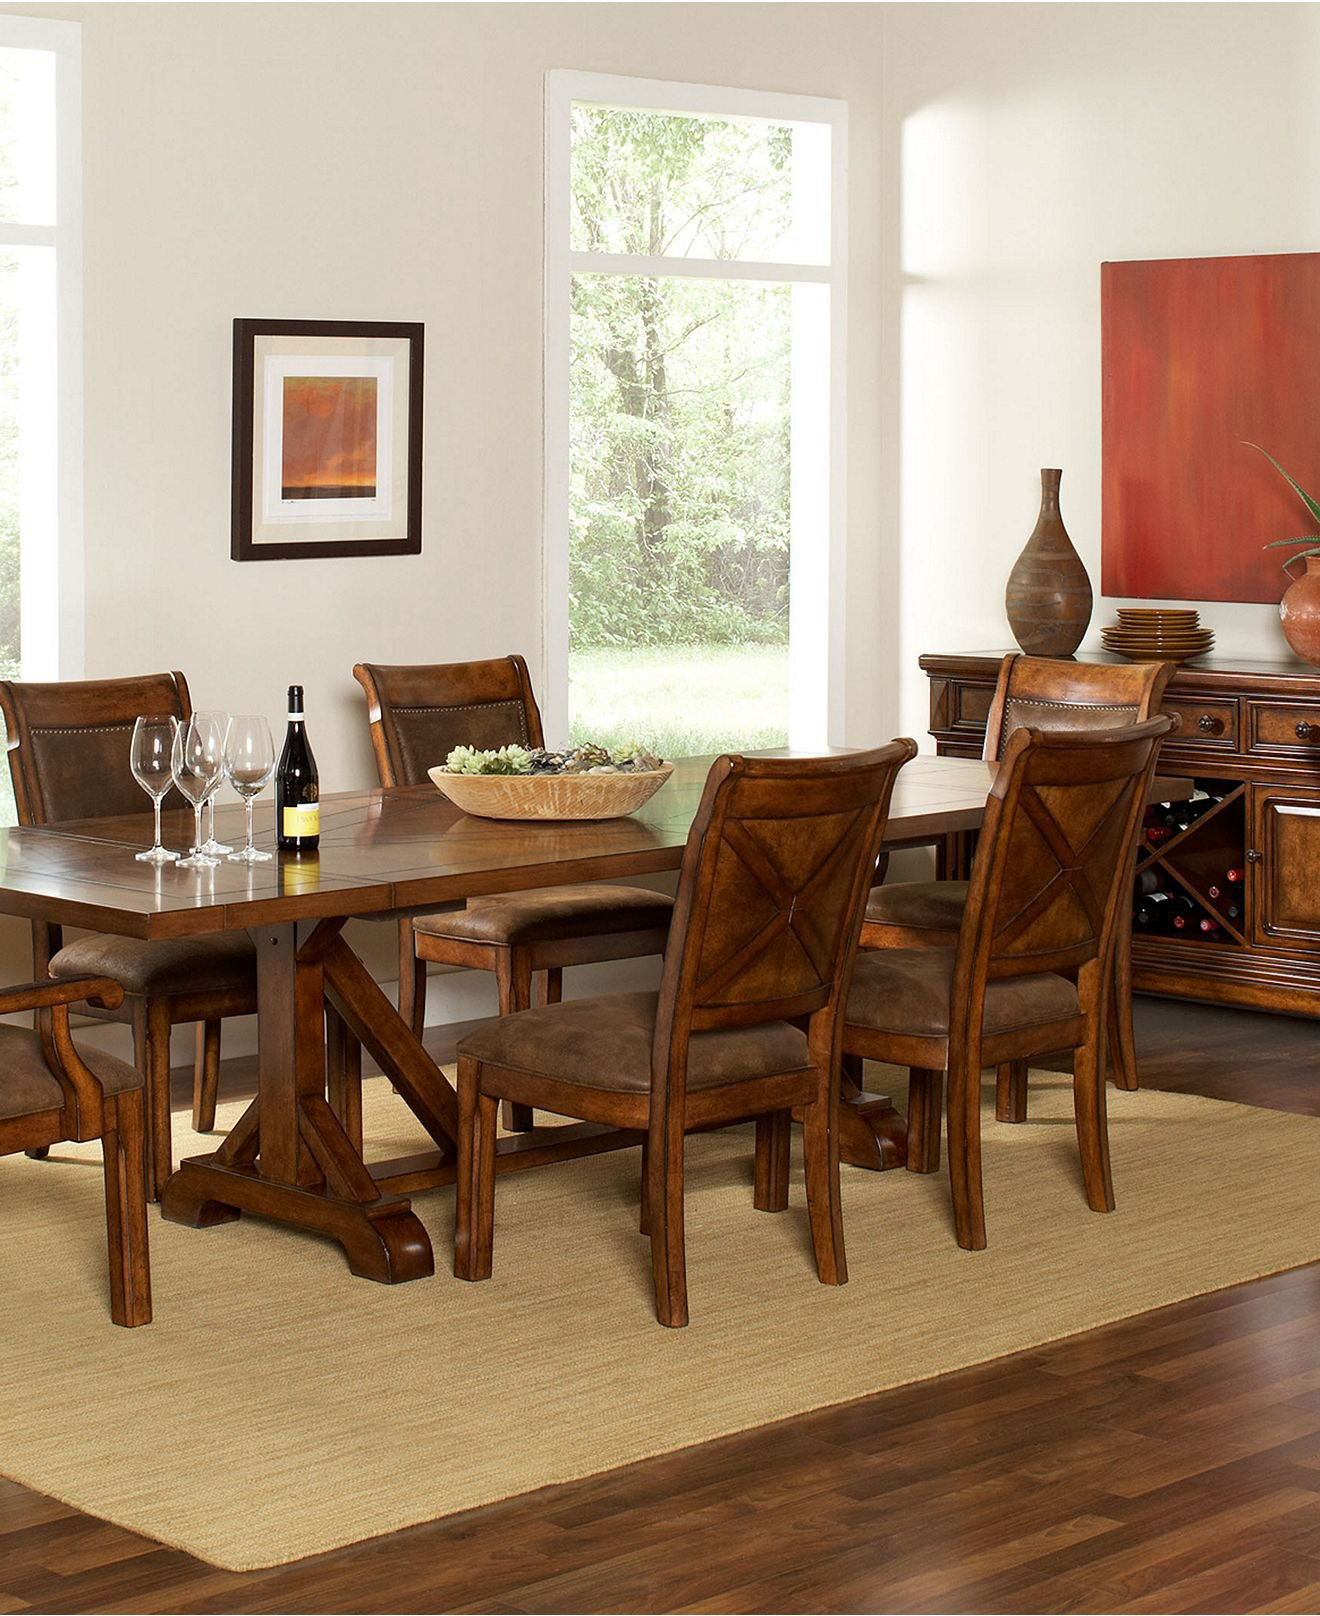 Mandara dining room furniture collection from macy 39 s the for Furniture collection